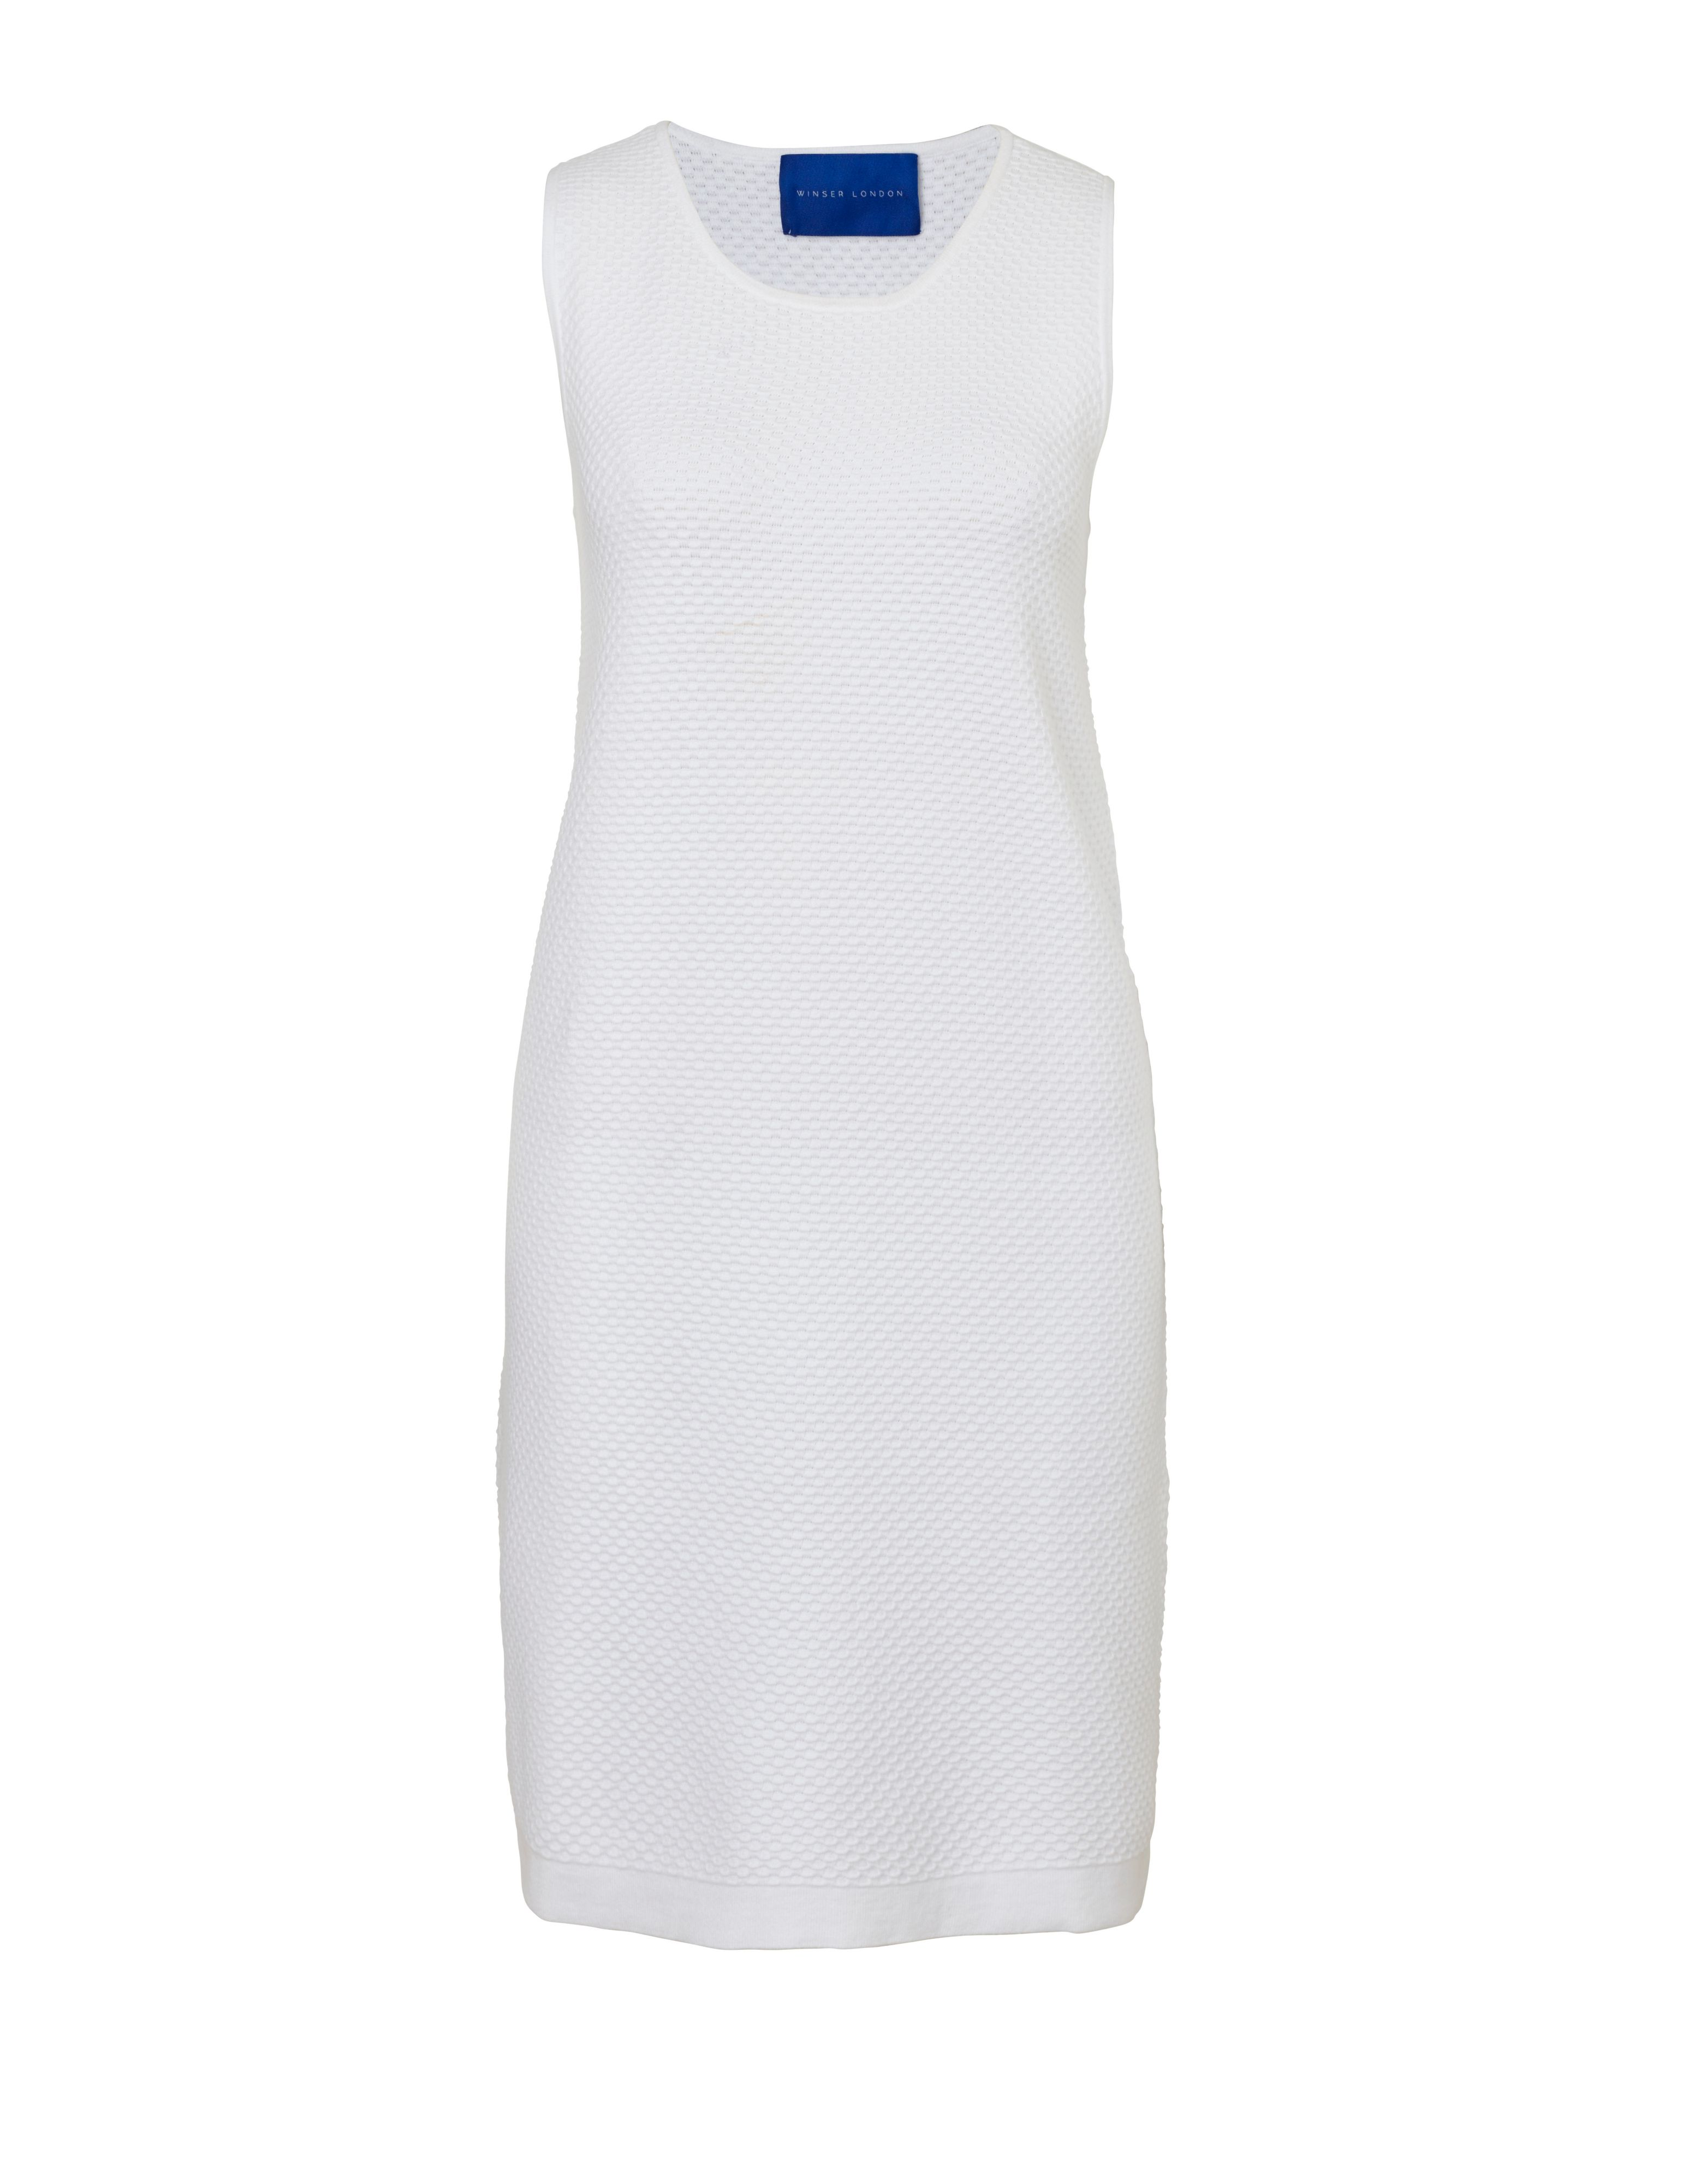 Winser London Cotton Textured Dress, White